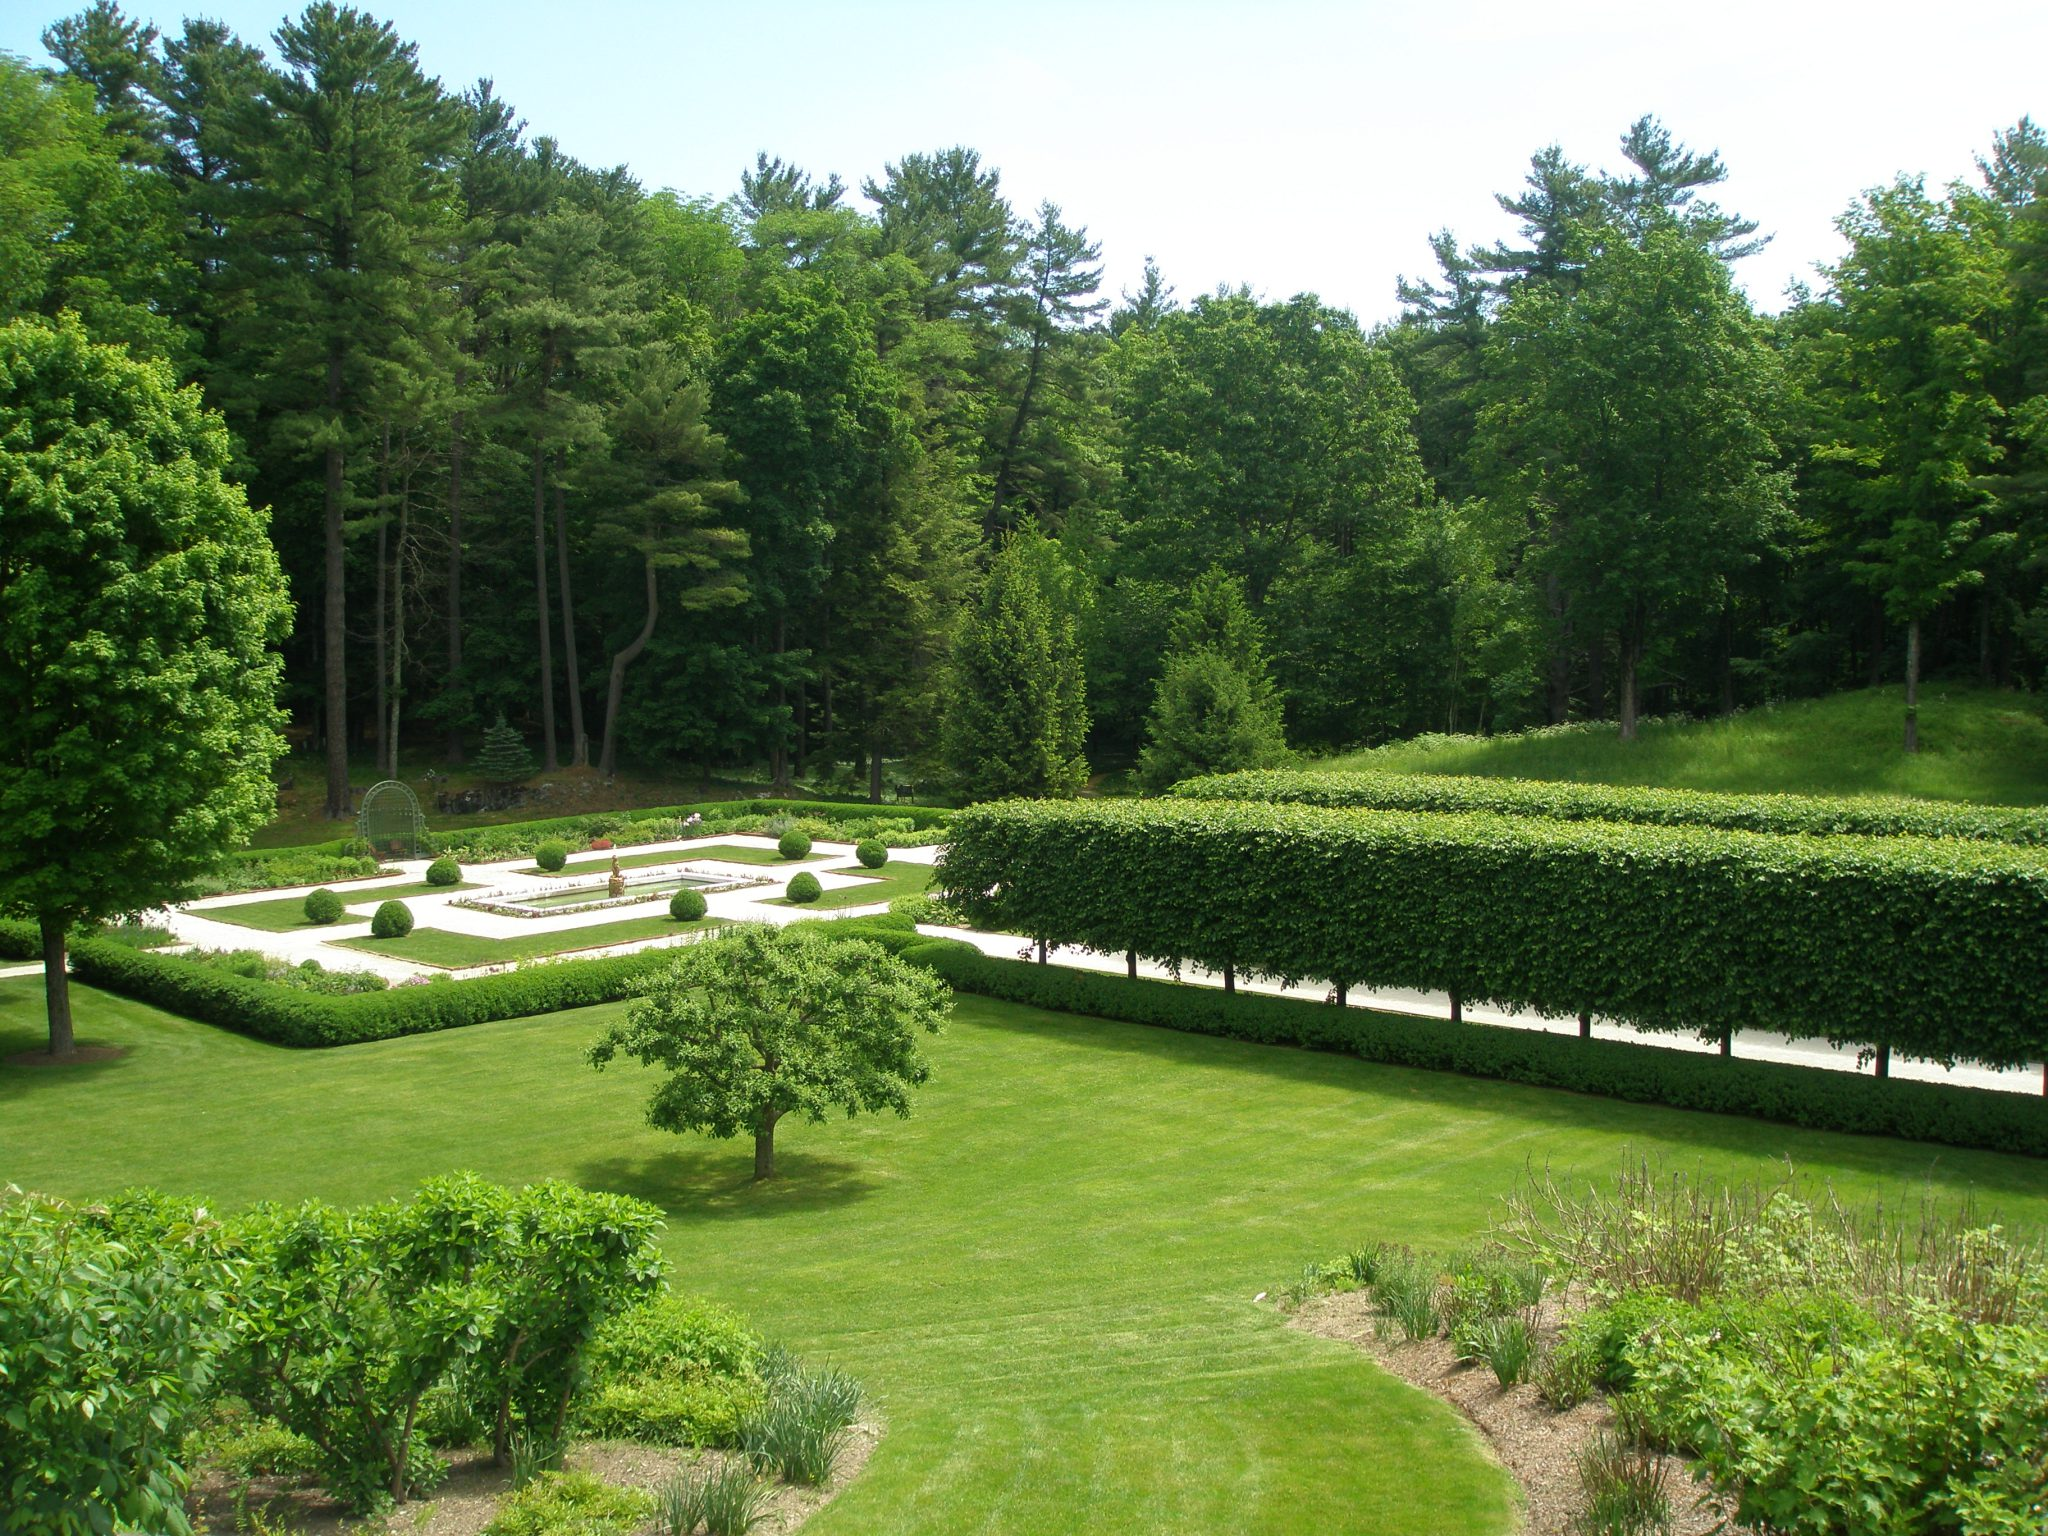 View from Terrace, down over the Rock Garden's Grass Steps, toward the Flower Garden, and The Lime Walk